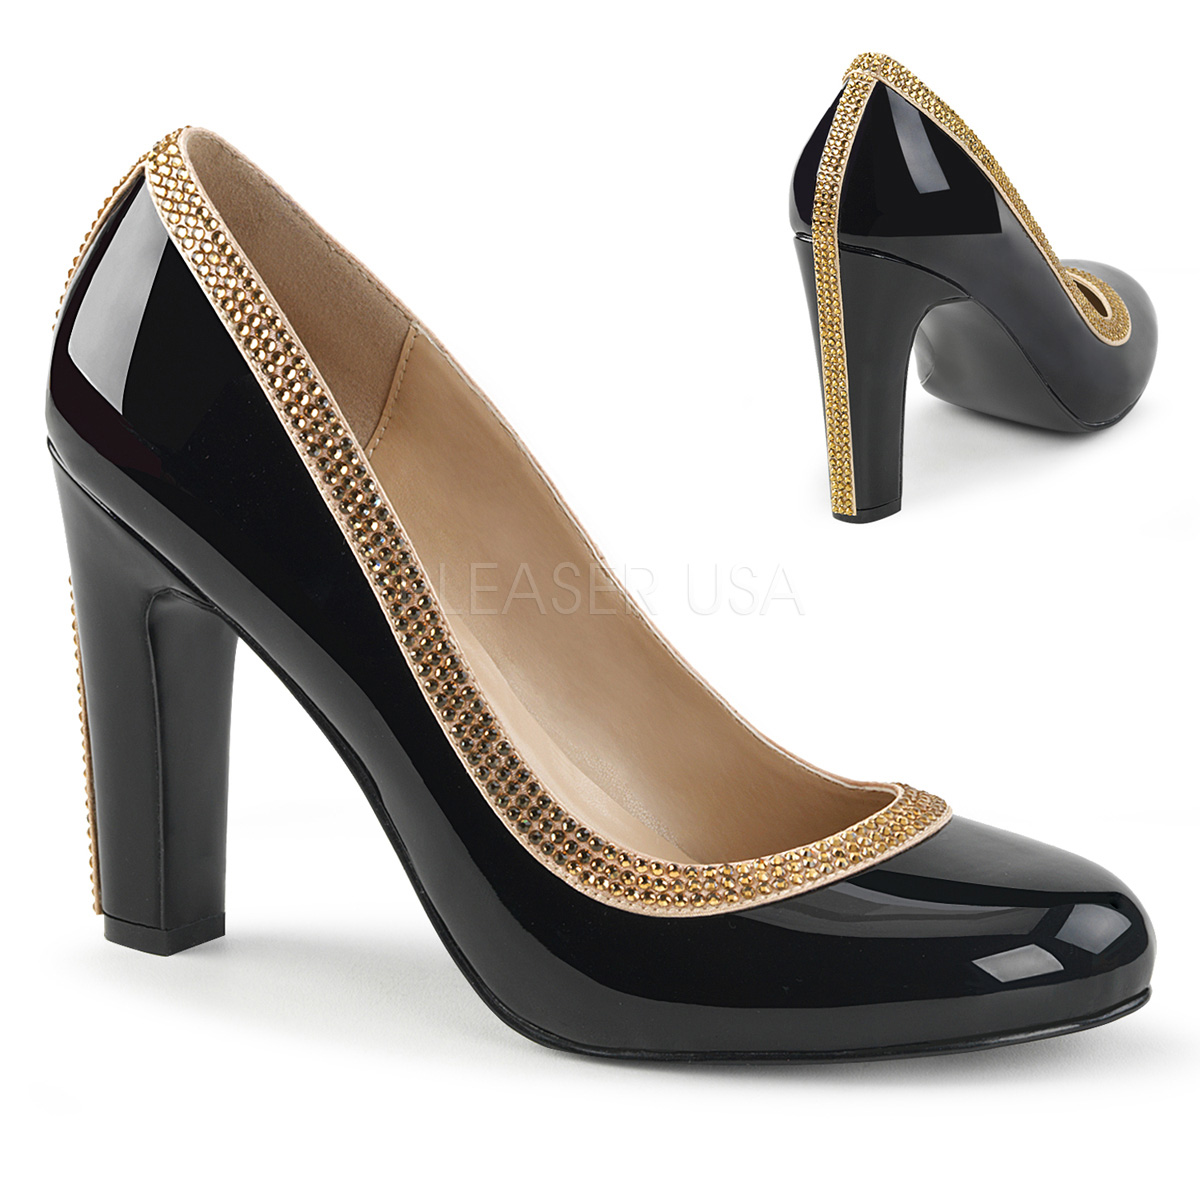 Queen 04 Round Toed Shoes